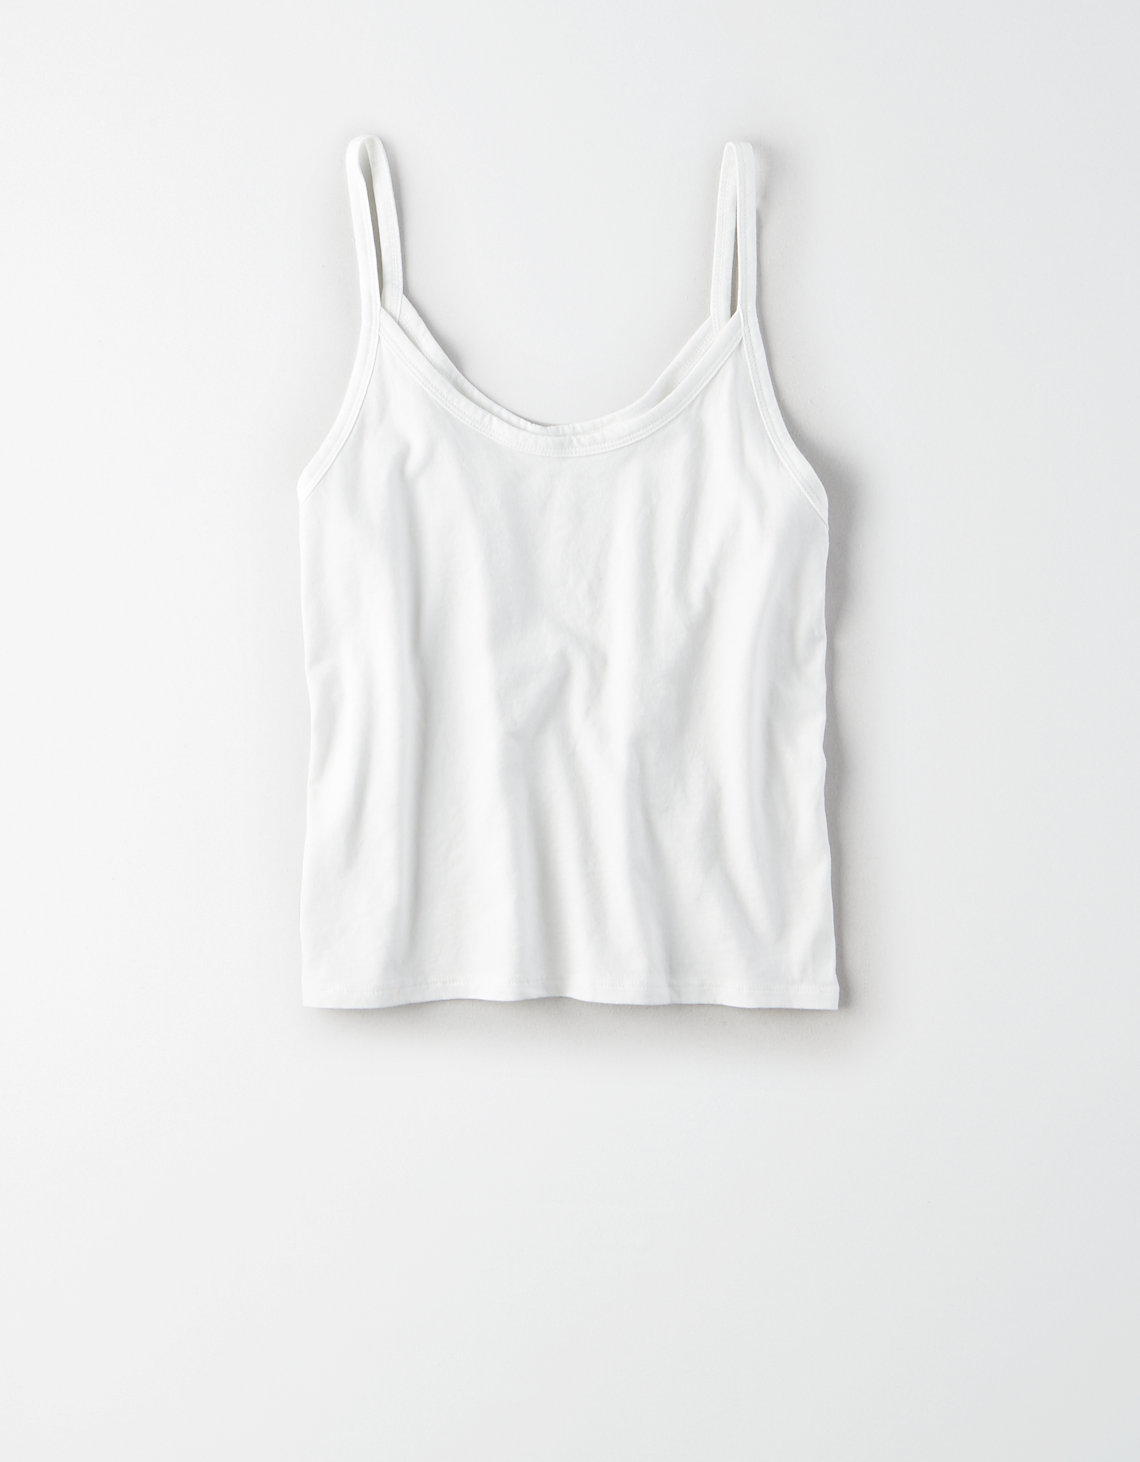 530399a246b1f AE Double Scoop Tank Top. Placeholder image. Product Image